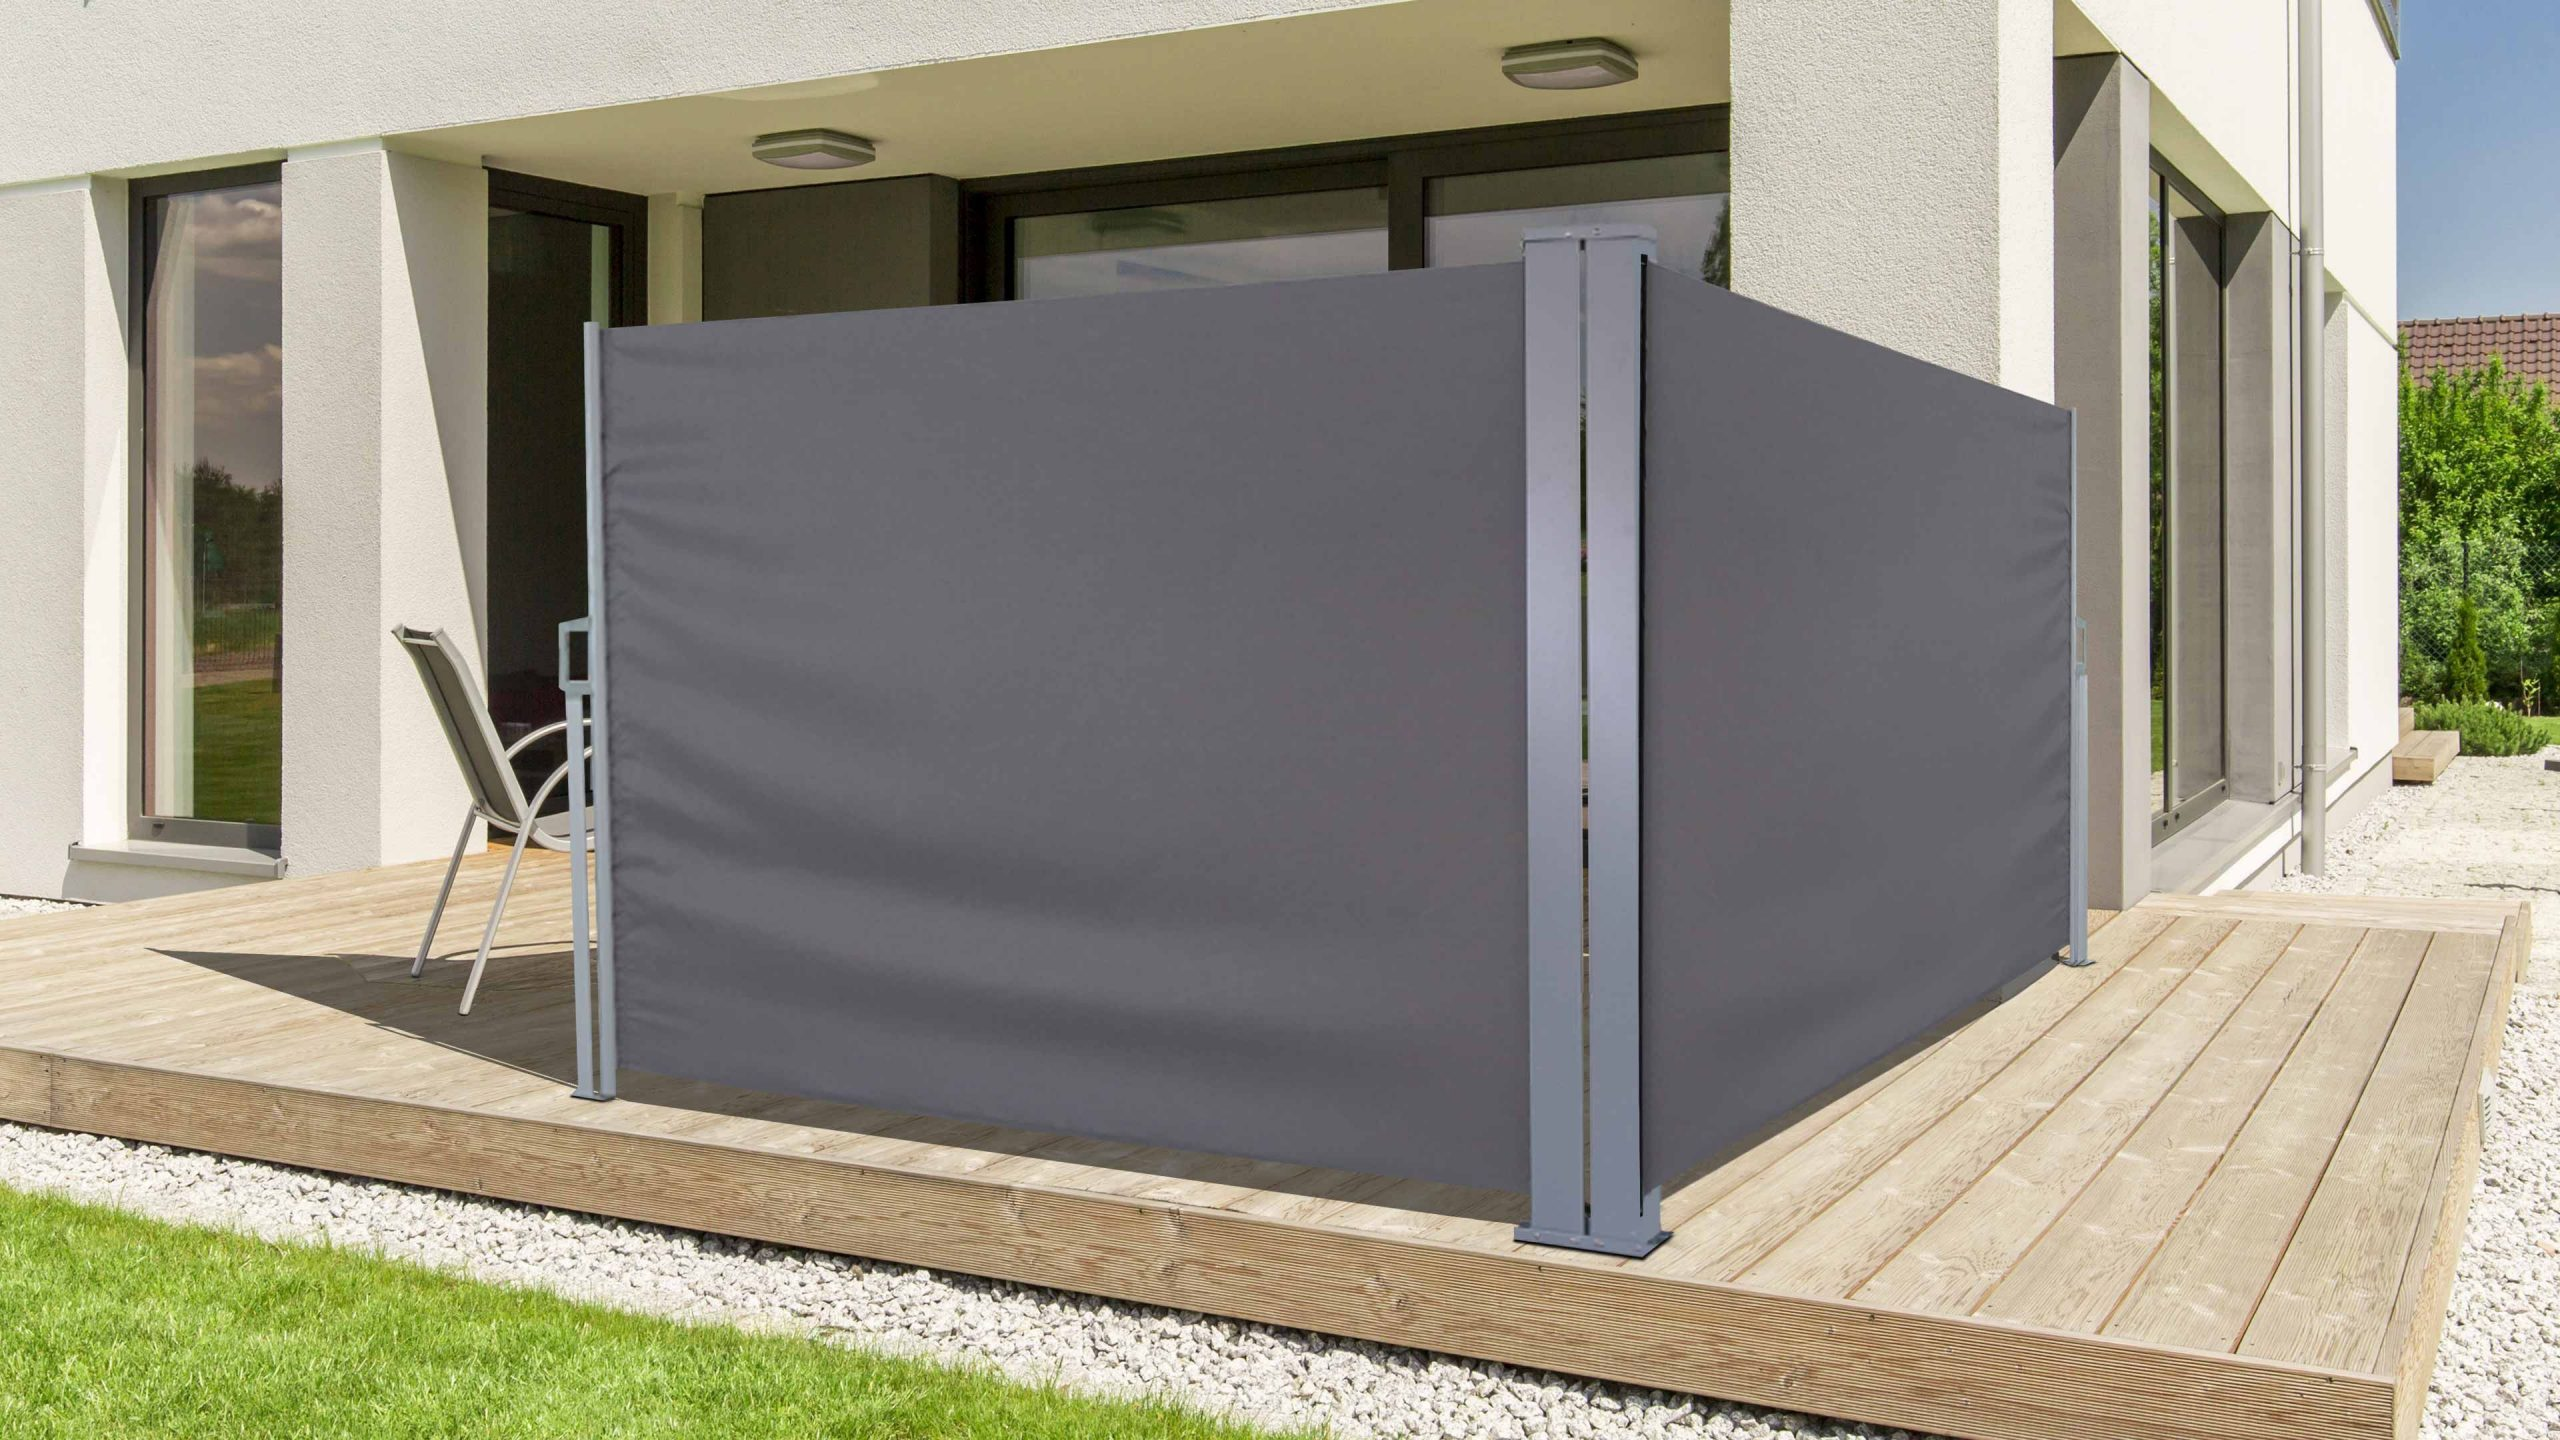 New Brise Vue Enroulable 4M | Home, House, Retractable Awning pour Leroy Merlin Paravent Exterieur